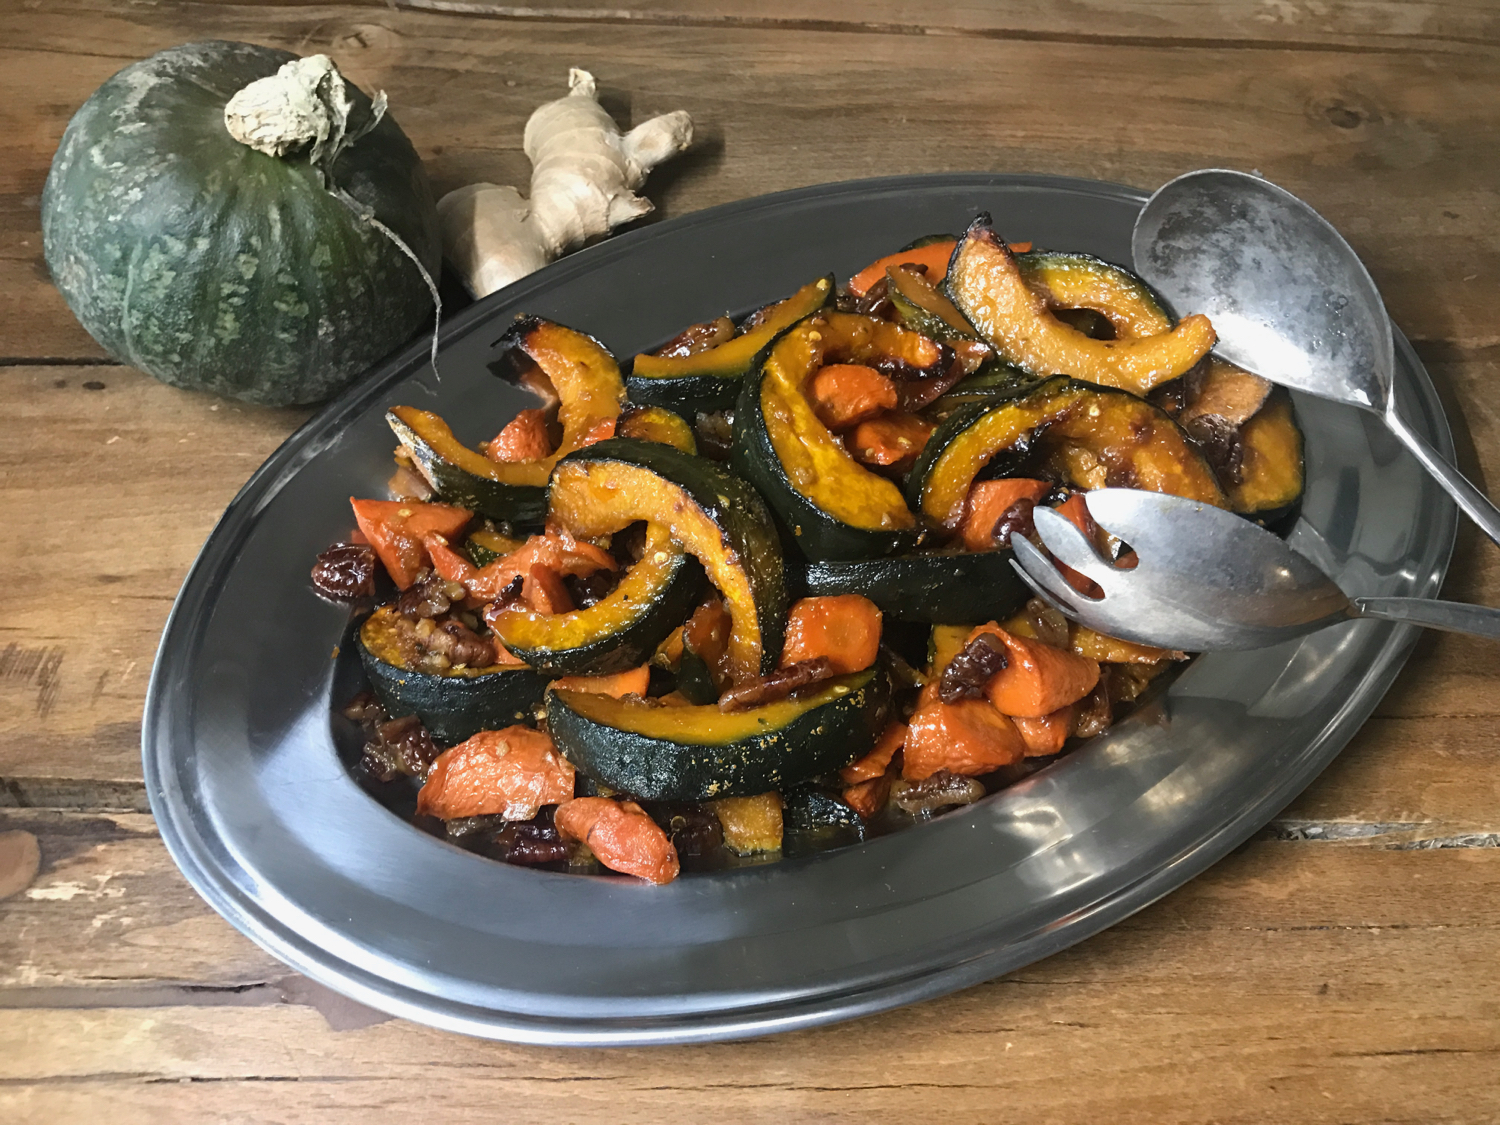 Posh Belly's Kitchen's Roasted Pumpkin and Carrots with Maple-Ginger-Thai Chili Pepper Glaze served in a stainless steel platter with vintage tongs.